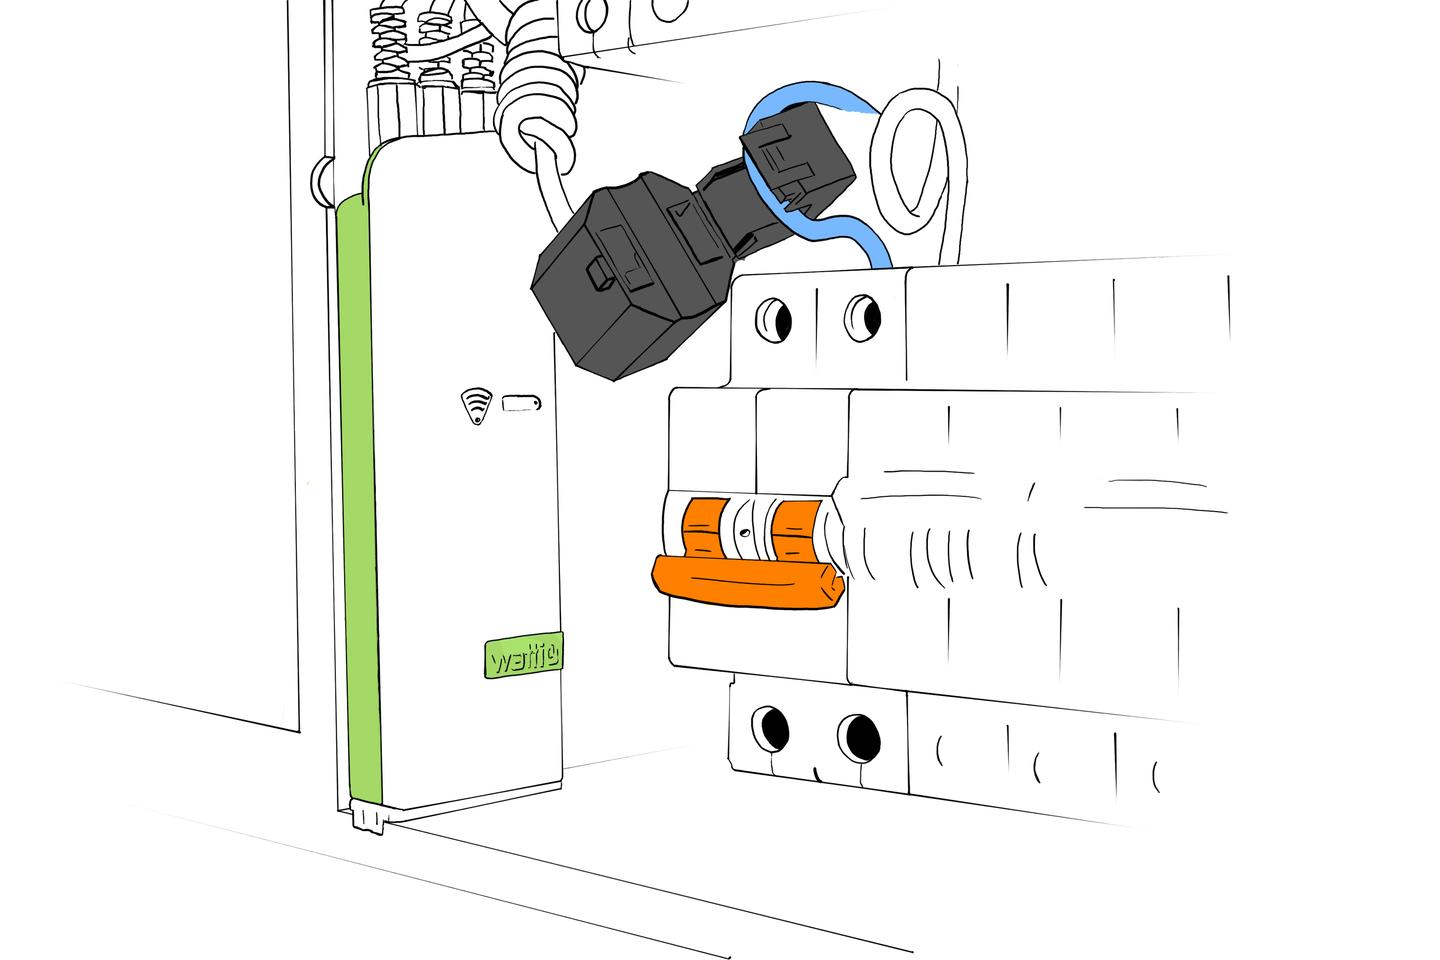 The BAT is a battery-powered energy monitor that fits inside the home electric box and can work for up to three circuits (Image: Wattio)